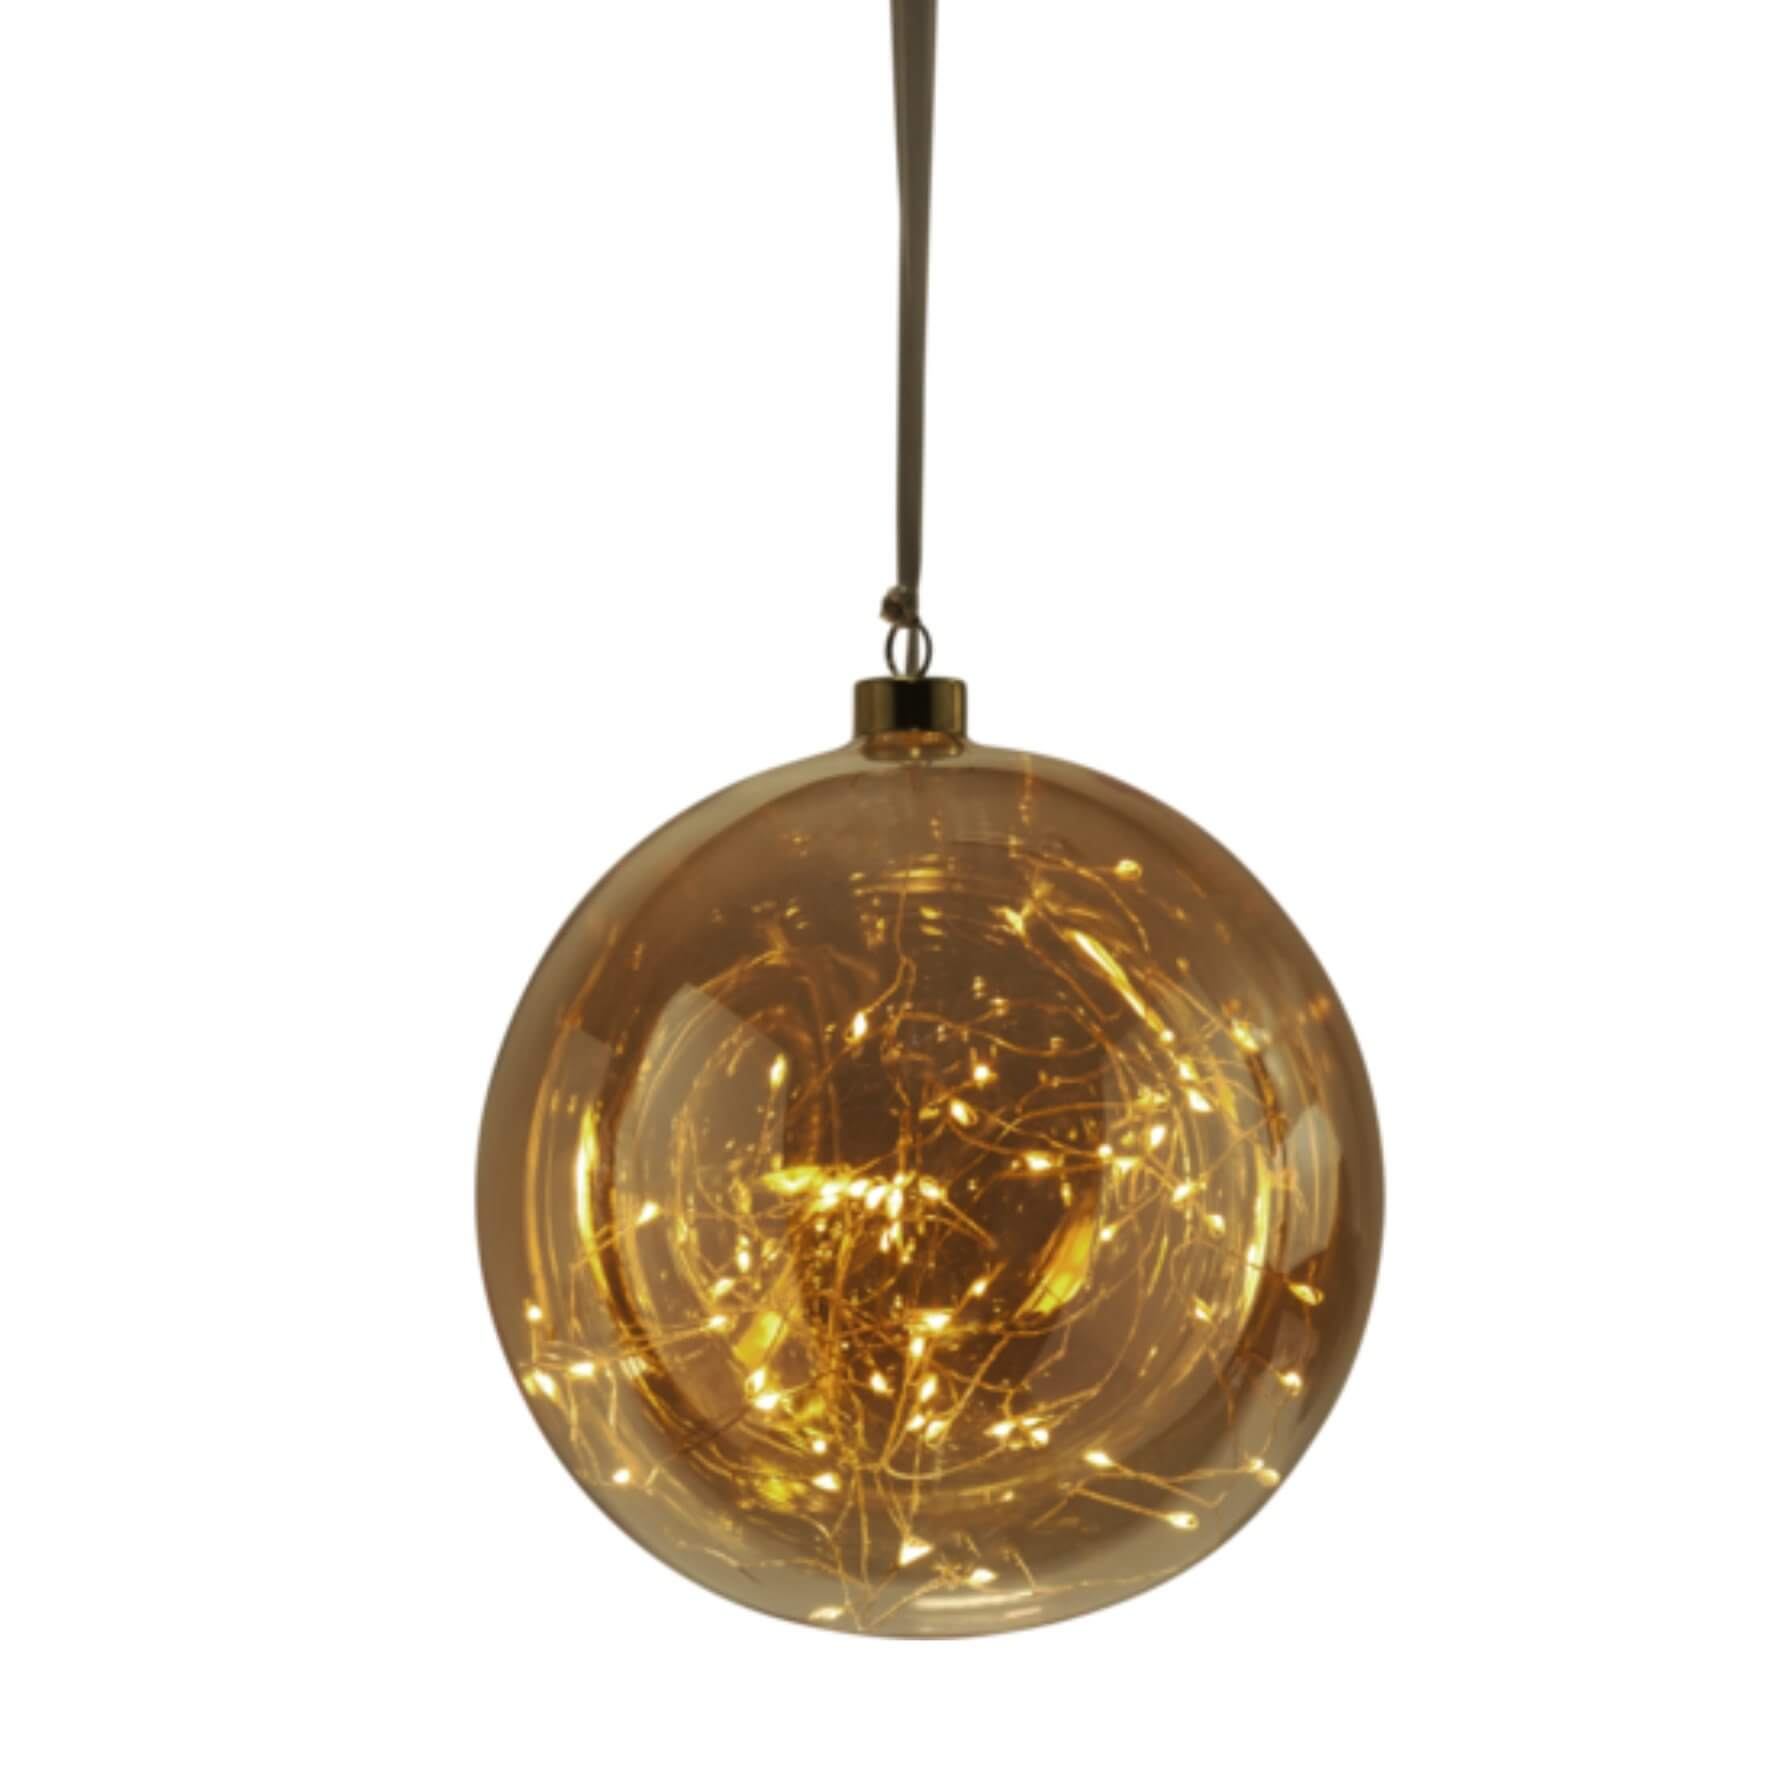 Boule de Noël ambre tall avec filament LED